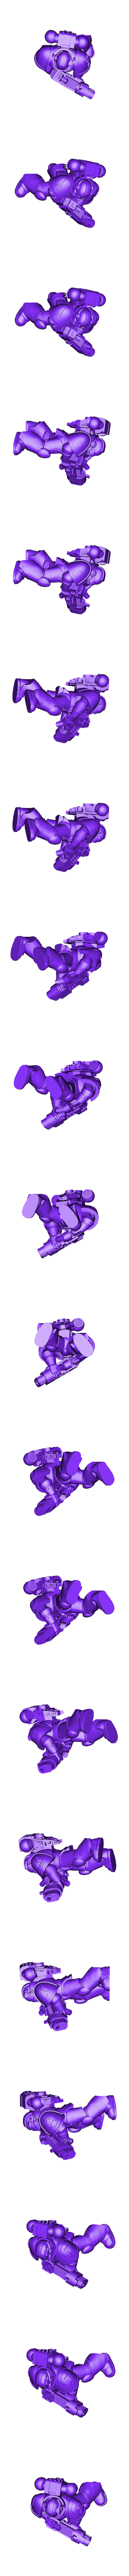 4_PlasmaCannon.stl Download free STL file Space Soldiers with Fist Symbols • Object to 3D print, PhysUdo